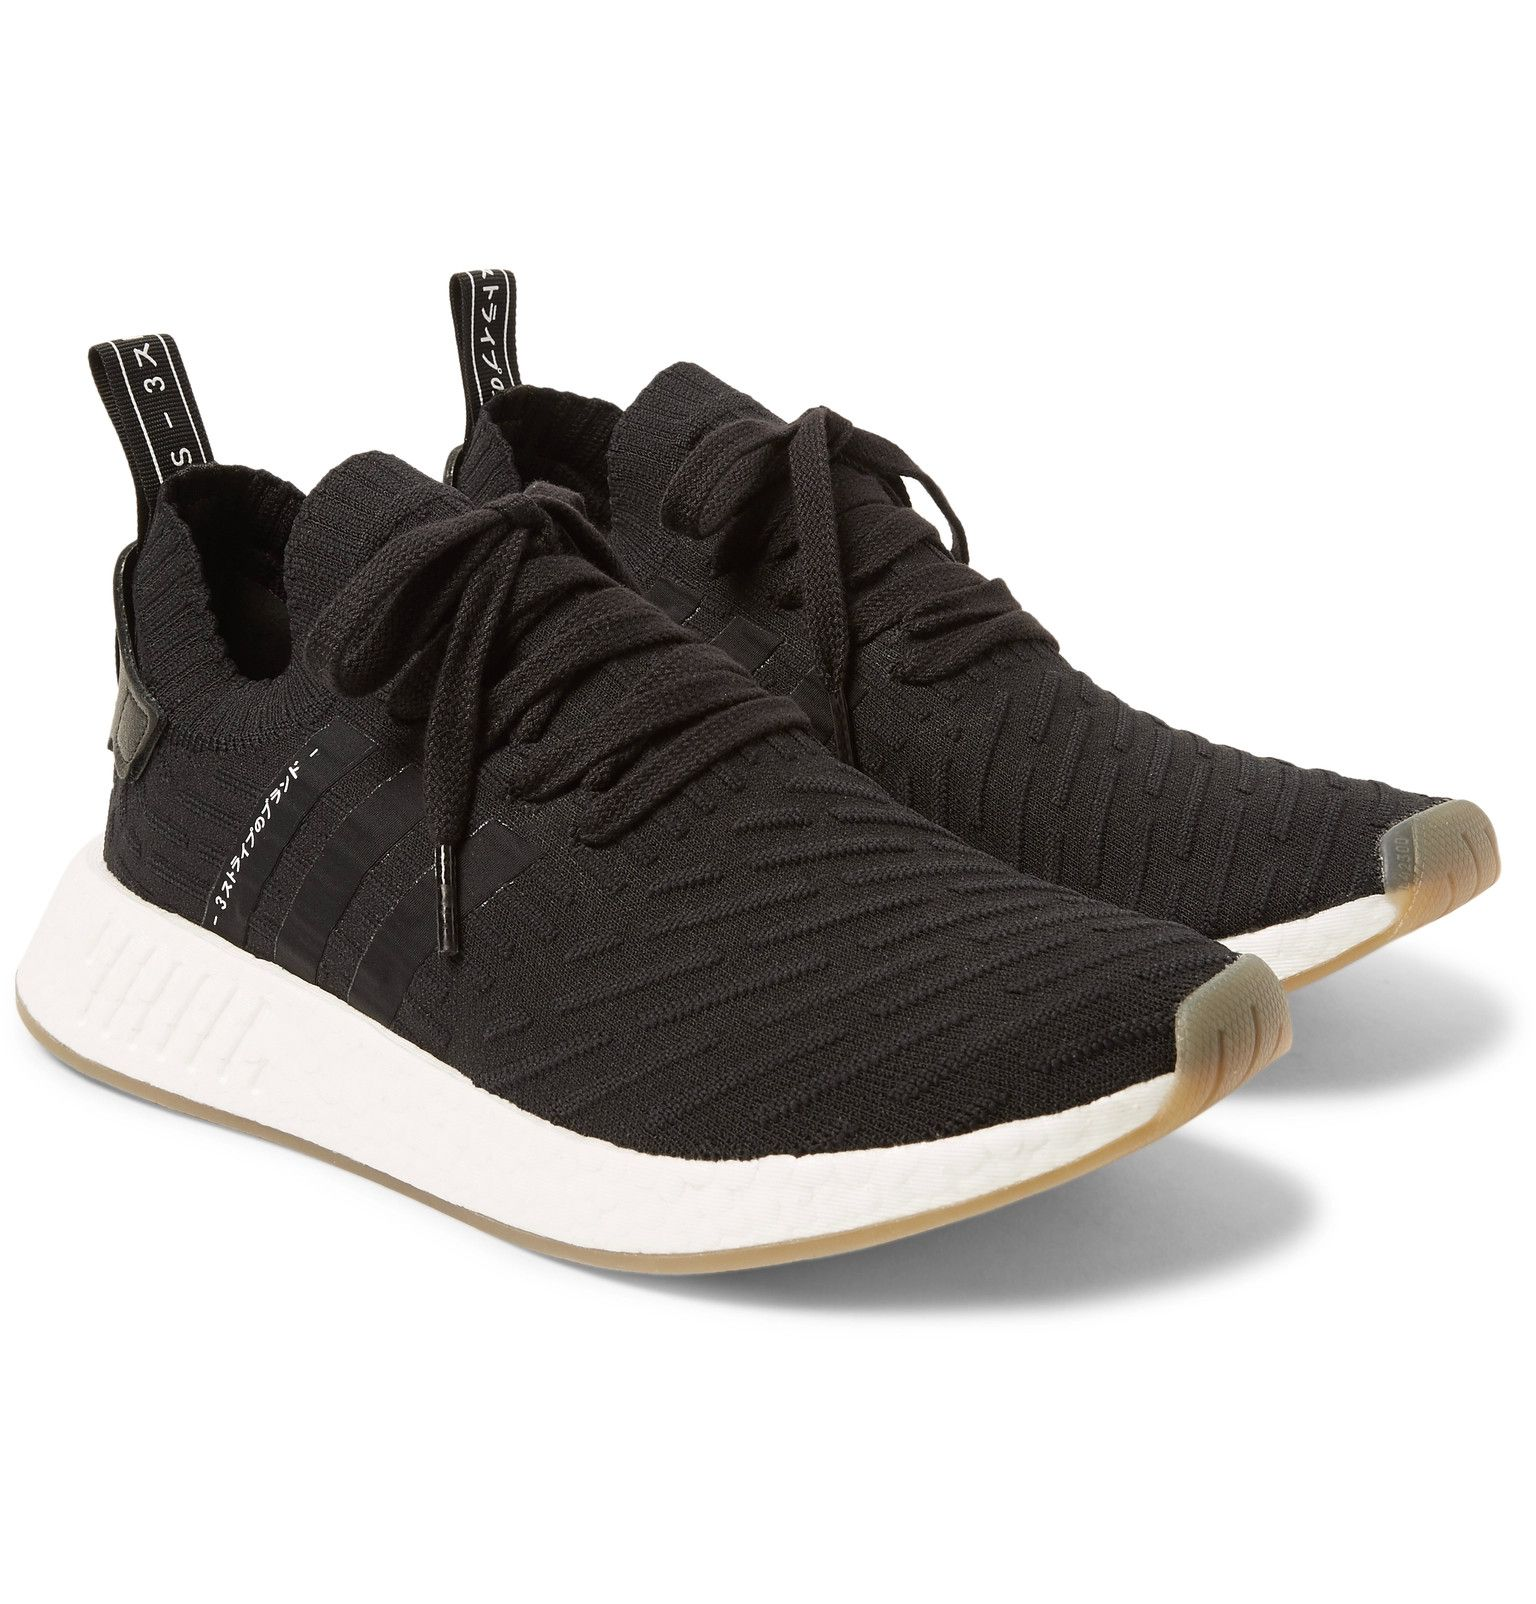 adidas nmd r2 black gum release date meaning